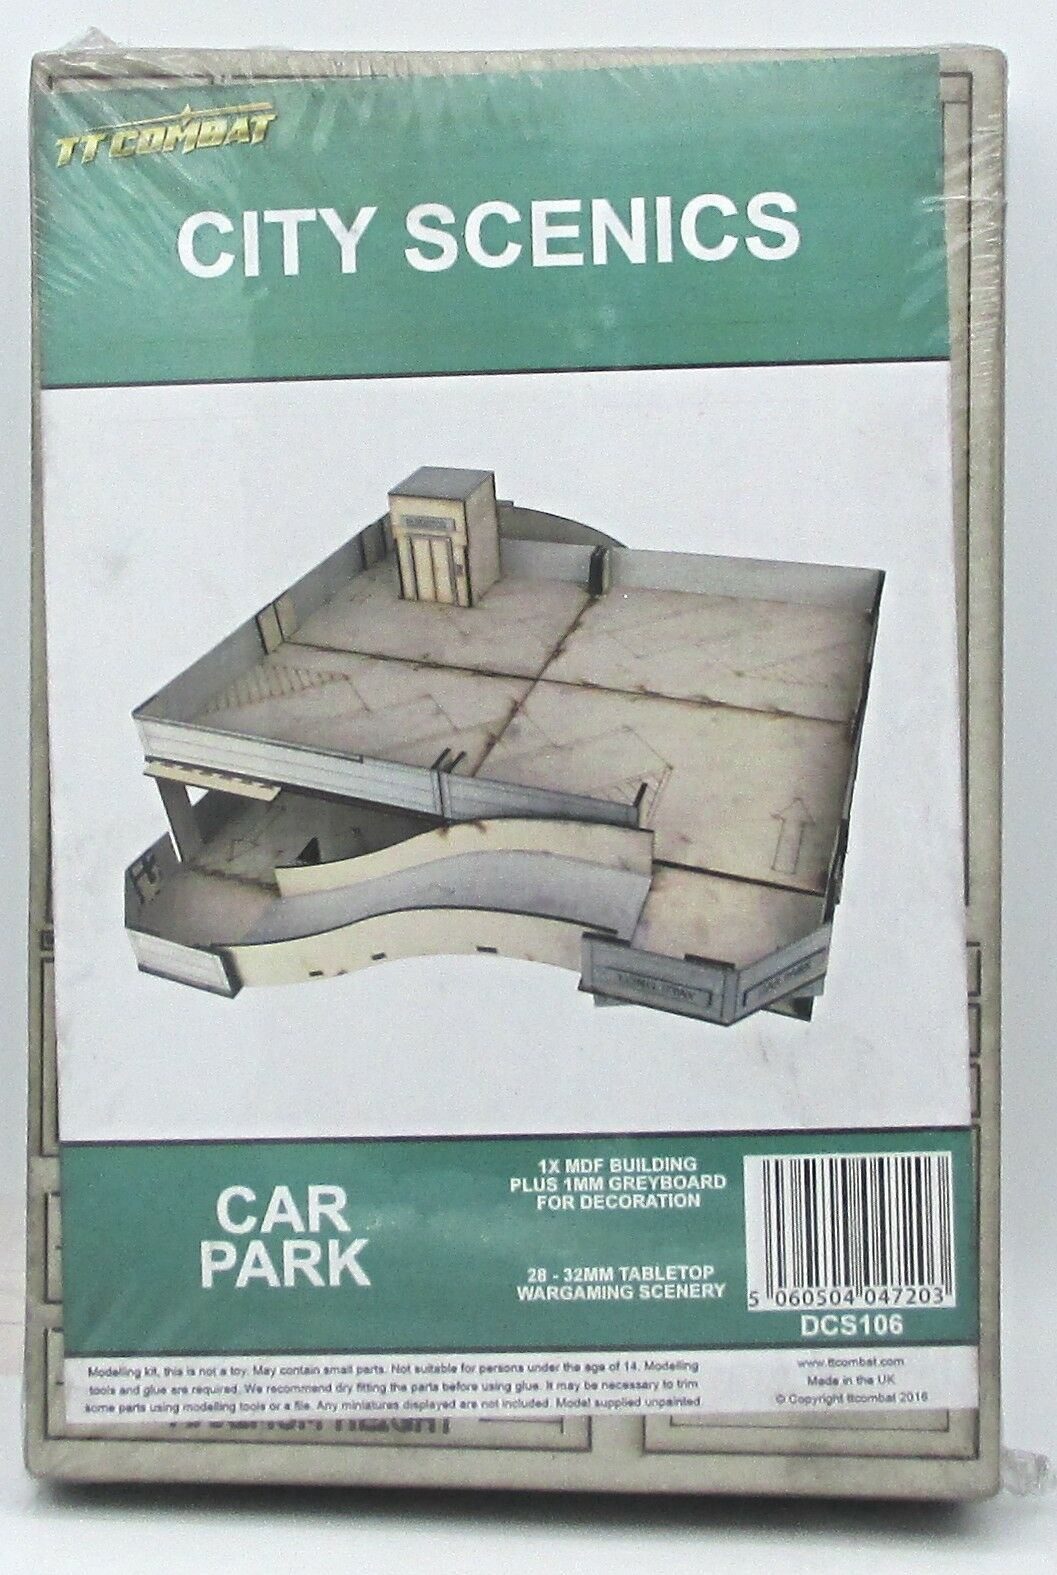 TTCombat DCS1016 Car Park (City Scenics) Terrain Kit Parking Garage Scenery NIB